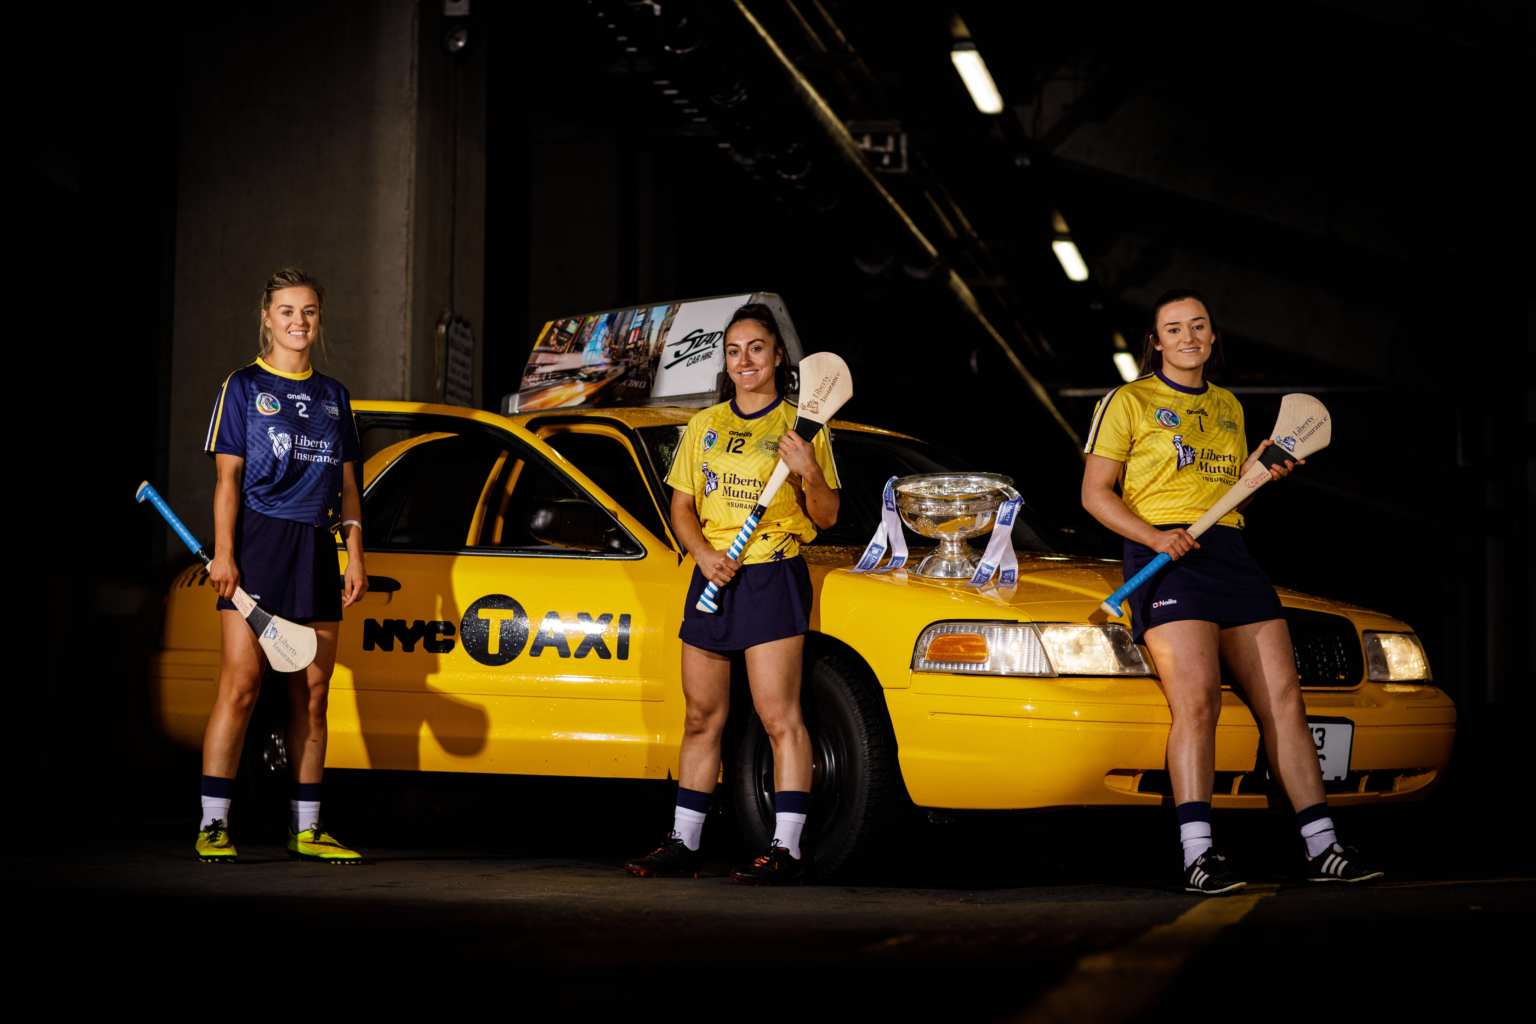 Three members of the Camogie All Stars squad with a New York Taxi to signify their trip to New York for an exhibition match.